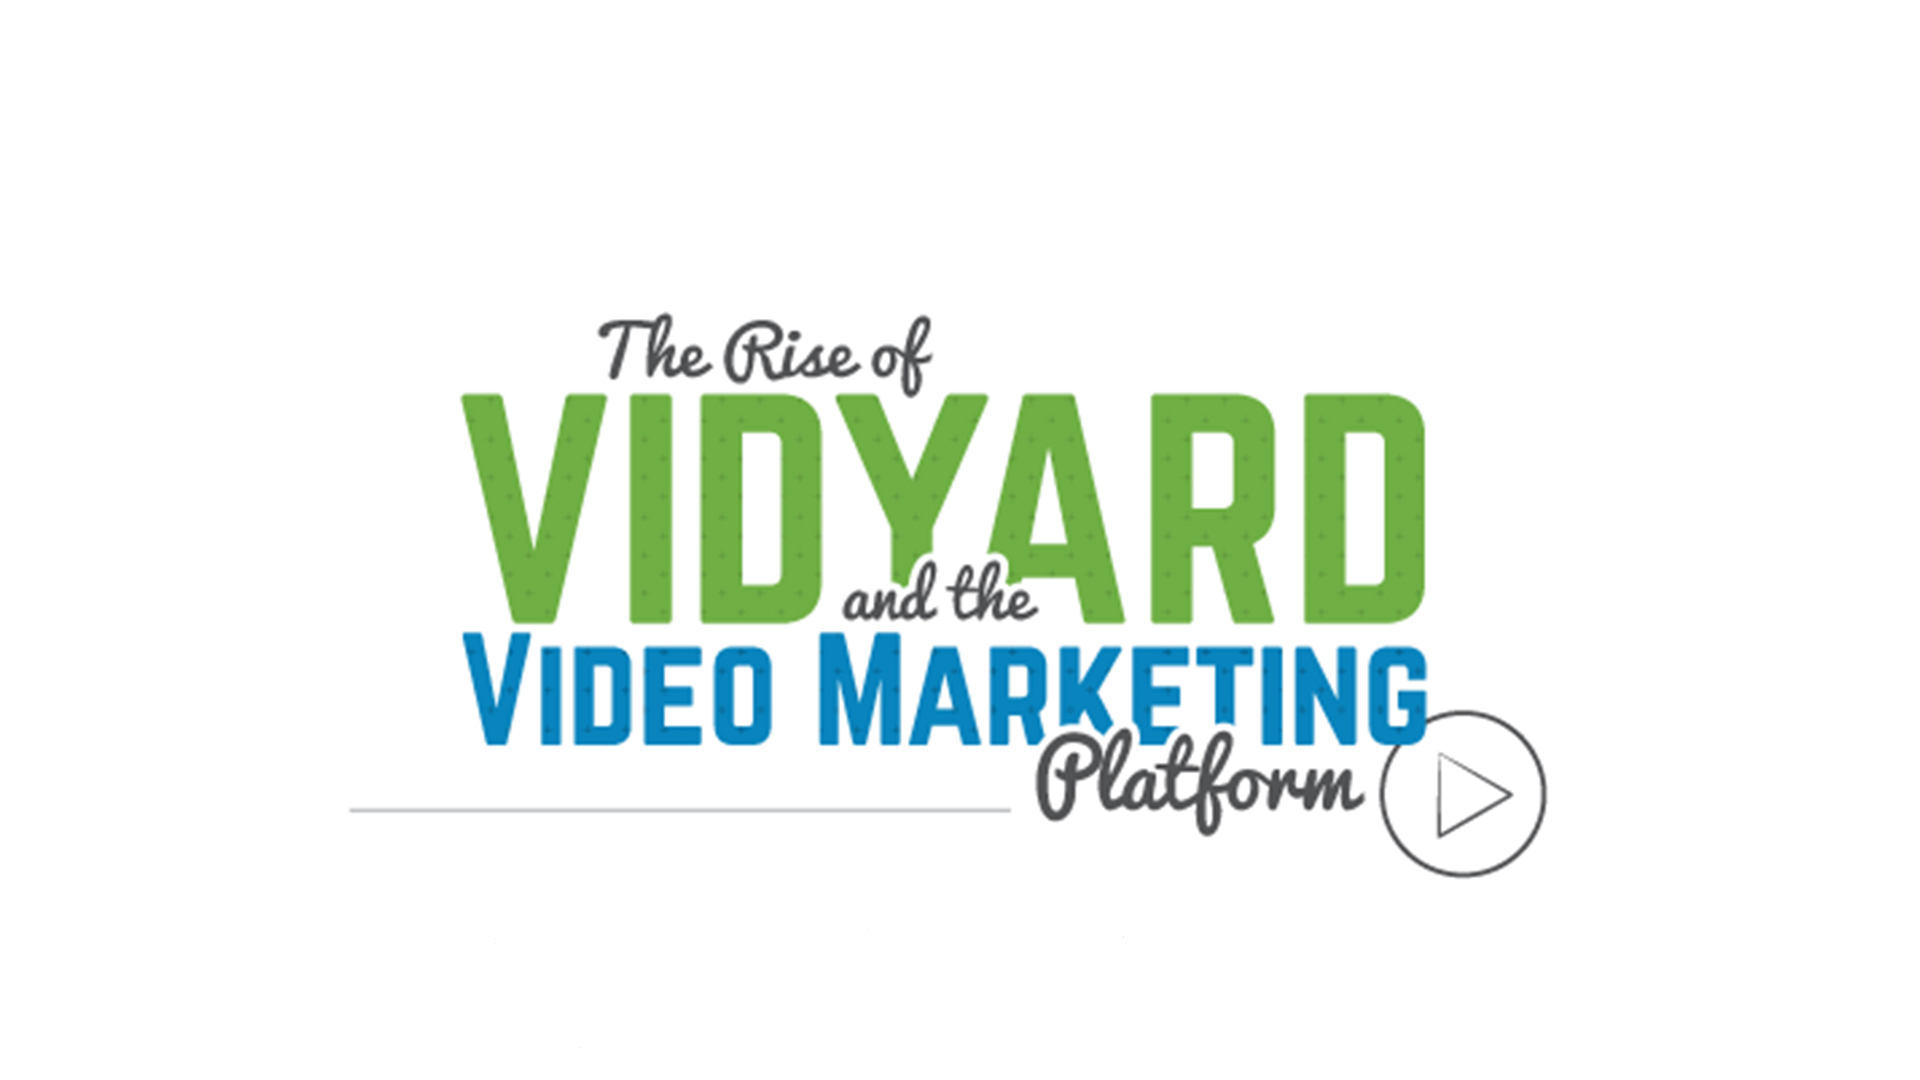 The Rise of Vidyard and the Video Marketing Platform